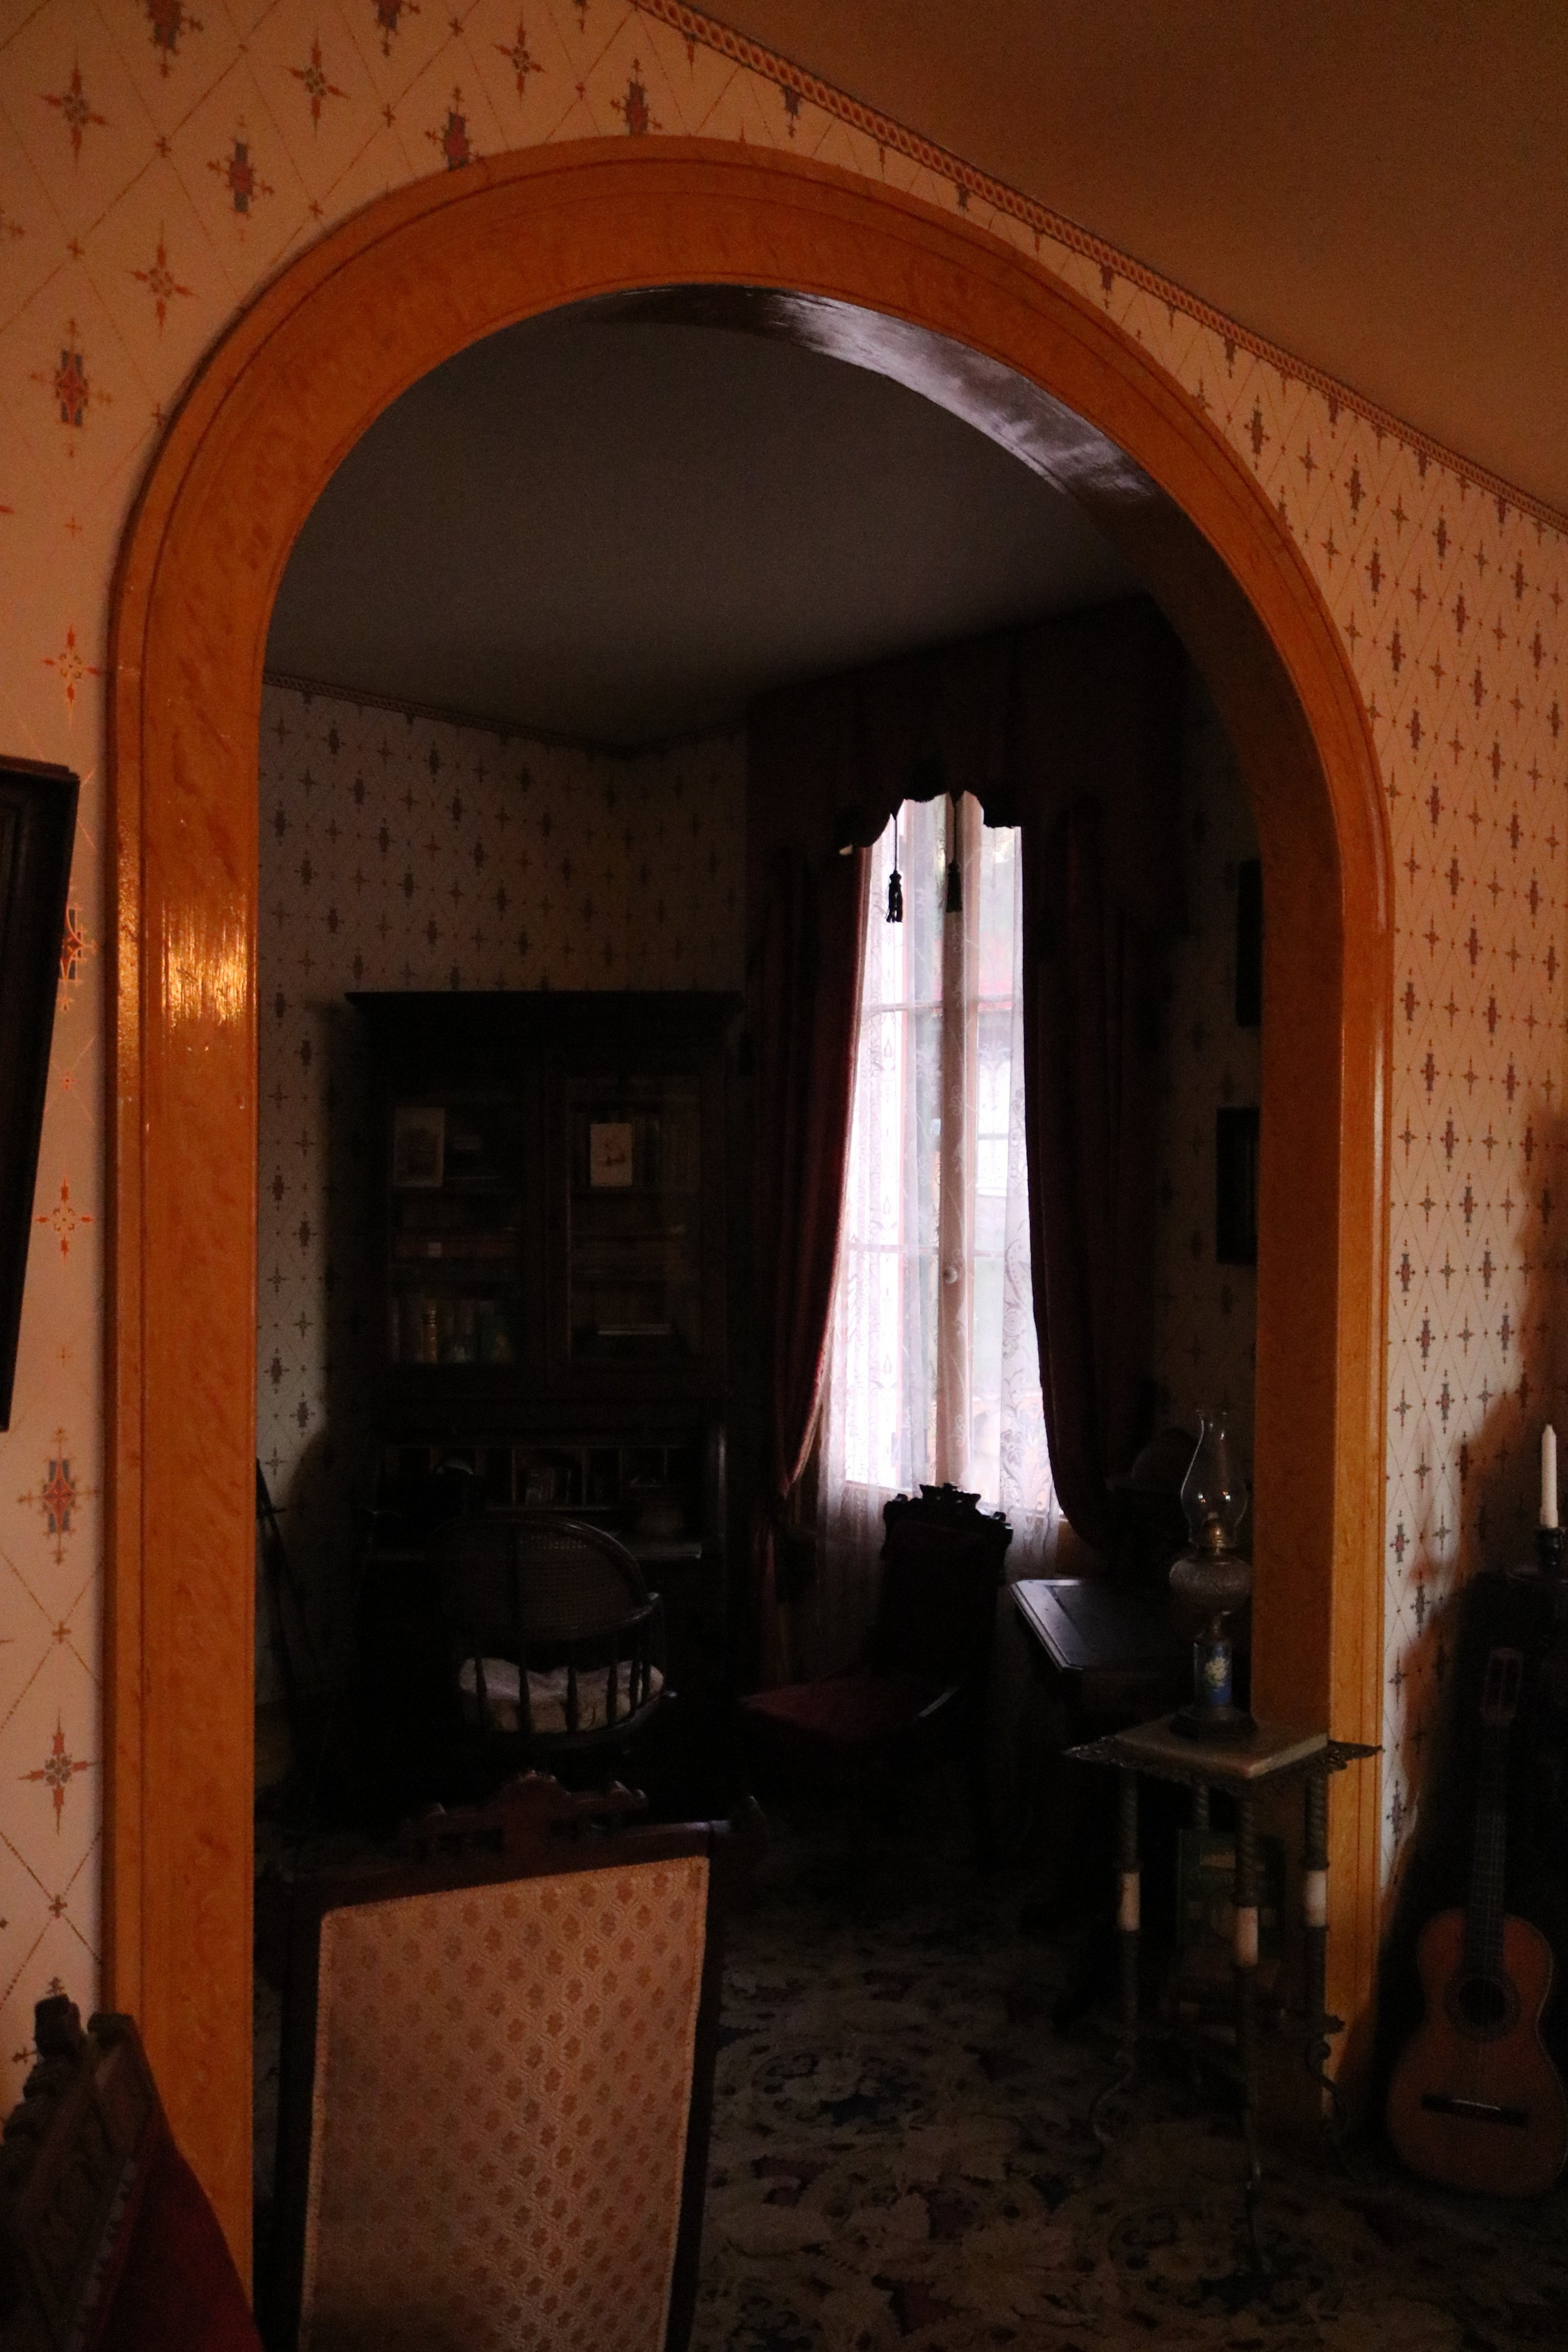 According to historical records, Thomas Whaley would regularly tell his guests that Yankee Jim was hung on gallows that stood in the spot where this arch was later constructed in the Whaley House.